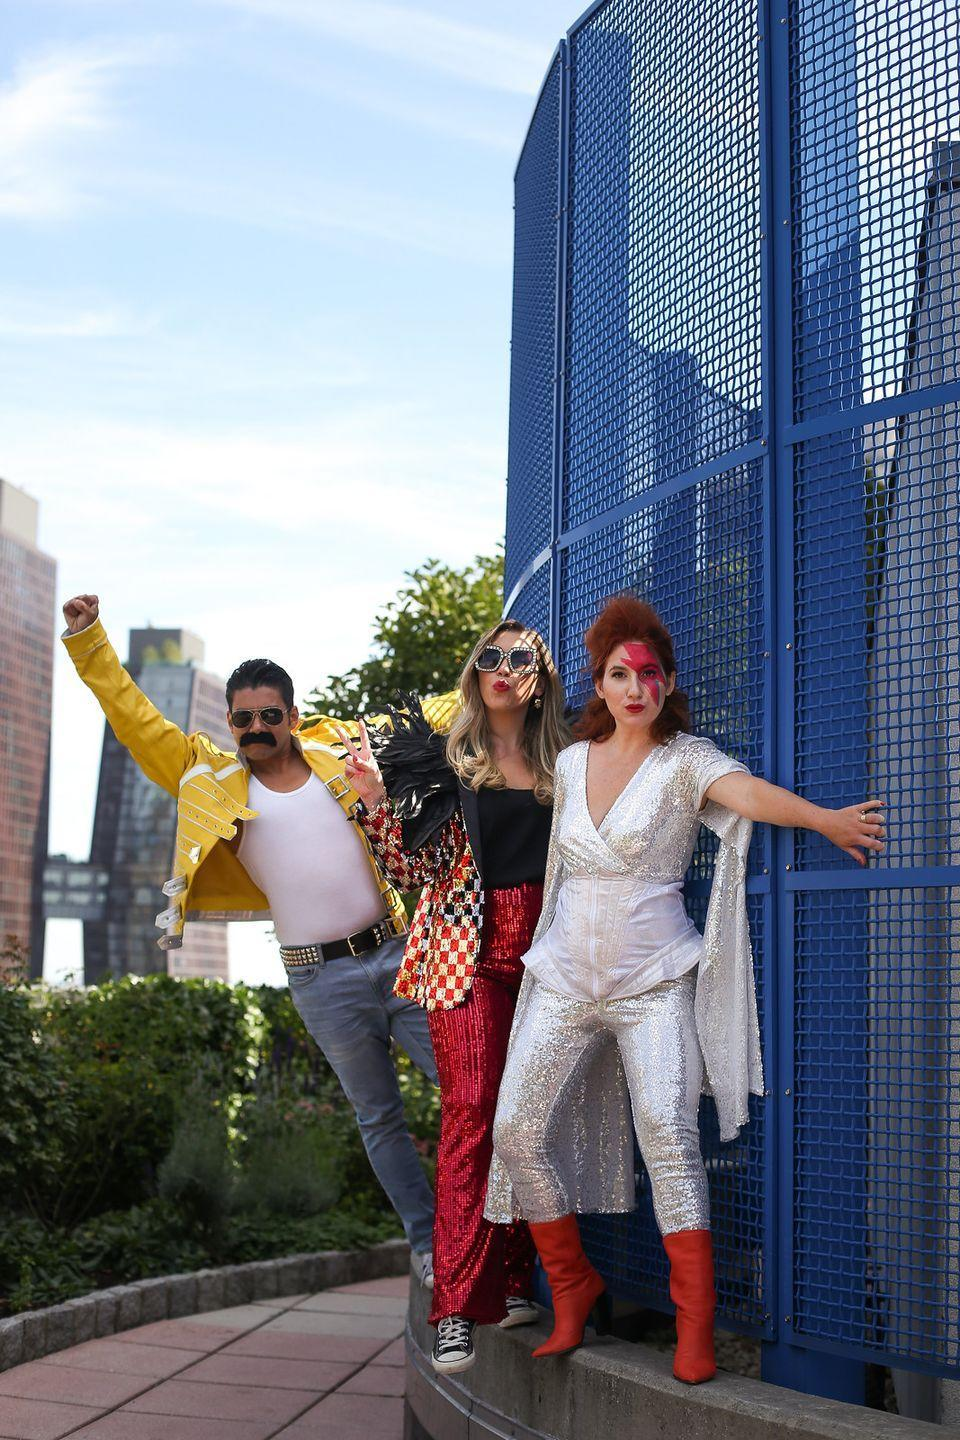 """<p>Pay homage to some of the most legendary rockstars of the decade—Elton John, David Bowie, and Freddie Mercury—with this group DIY Halloween costume. </p><p><strong>Find out more at <a href=""""https://livingaftermidnite.com/2019/10/group-halloween-costumes-that-will-win-you-best-dressed.html"""" rel=""""nofollow noopener"""" target=""""_blank"""" data-ylk=""""slk:Living After Midnite"""" class=""""link rapid-noclick-resp"""">Living After Midnite</a></strong>. </p>"""